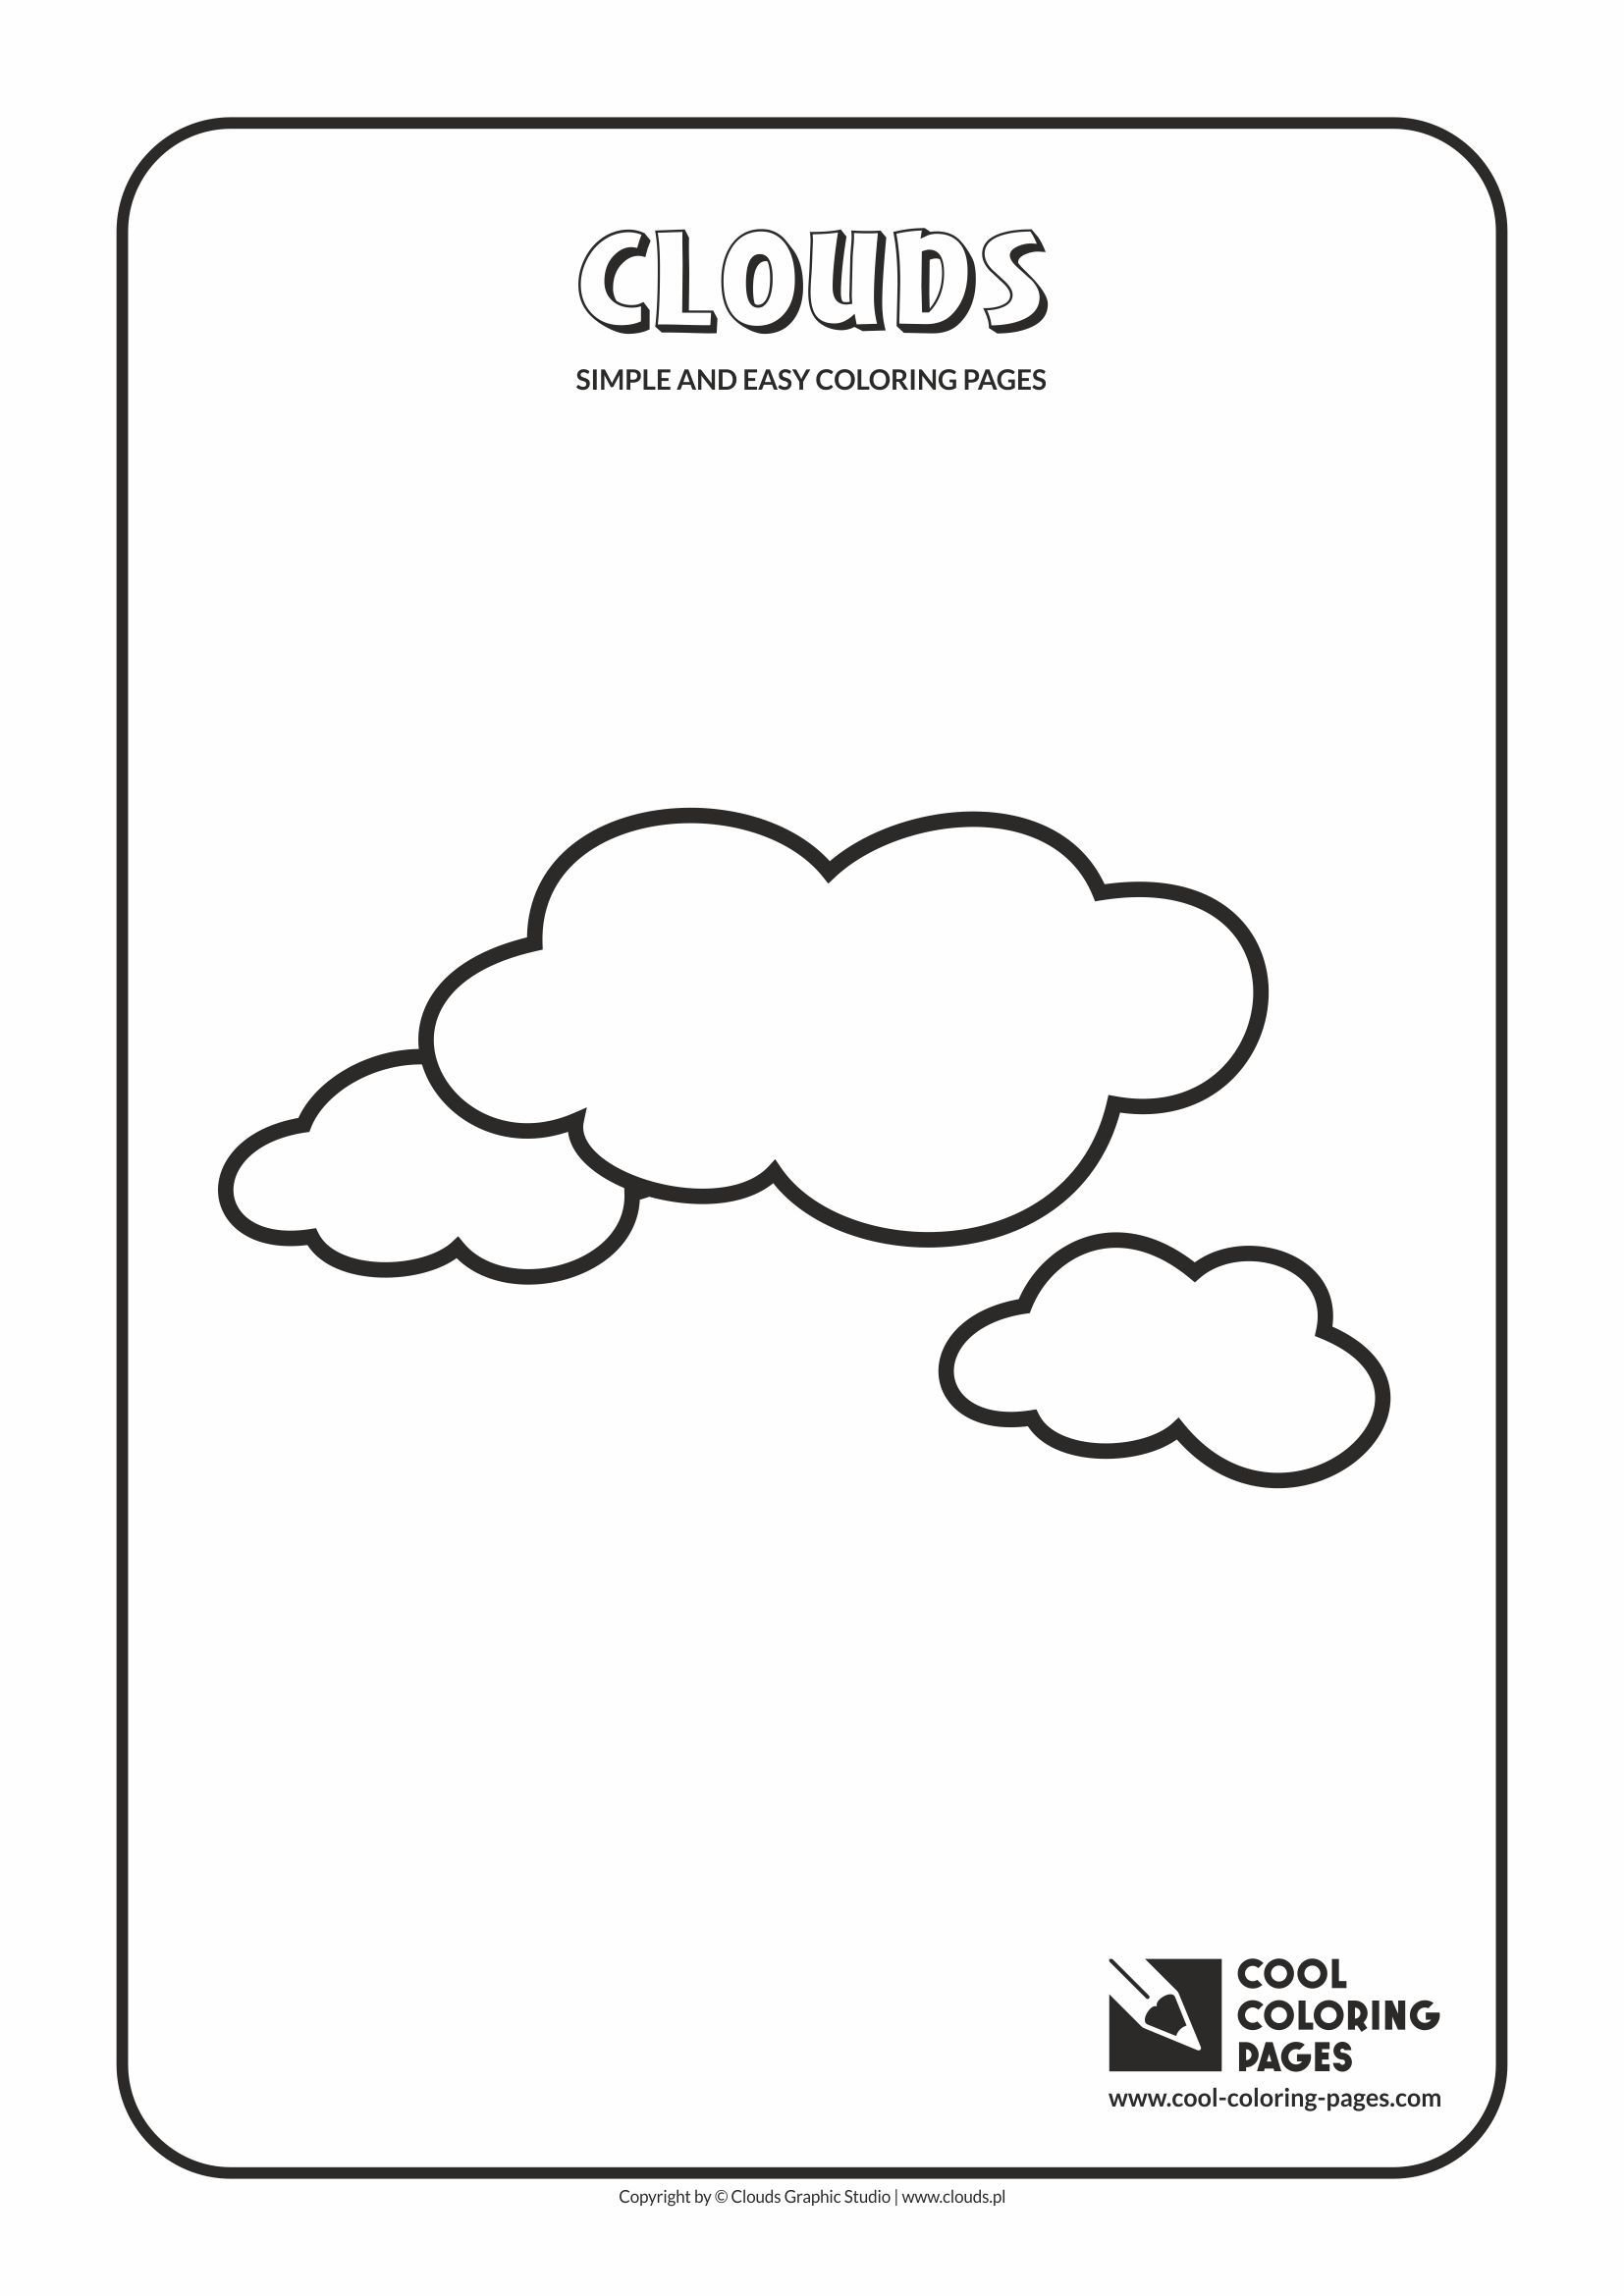 Simple and easy coloring pages for toddlers - Clouds